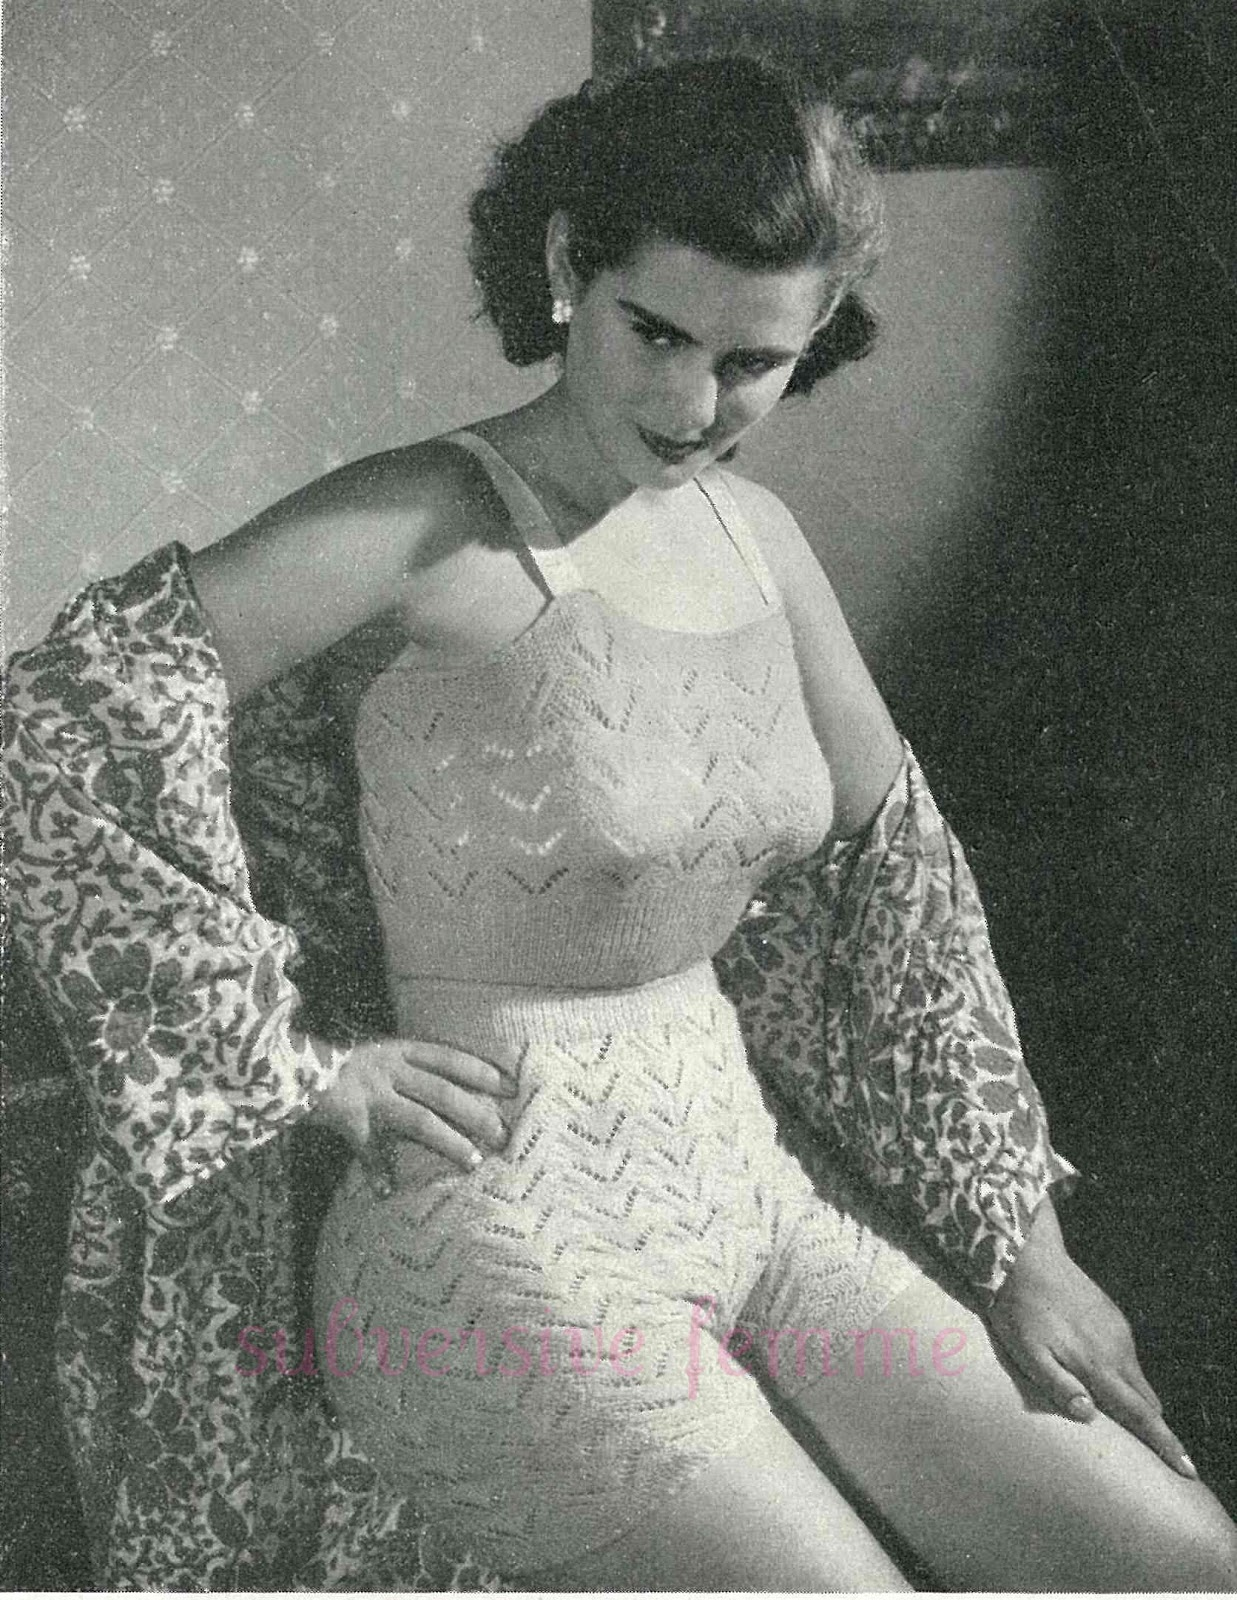 Knitted Vest And Panties C 1950s Subversive Femme